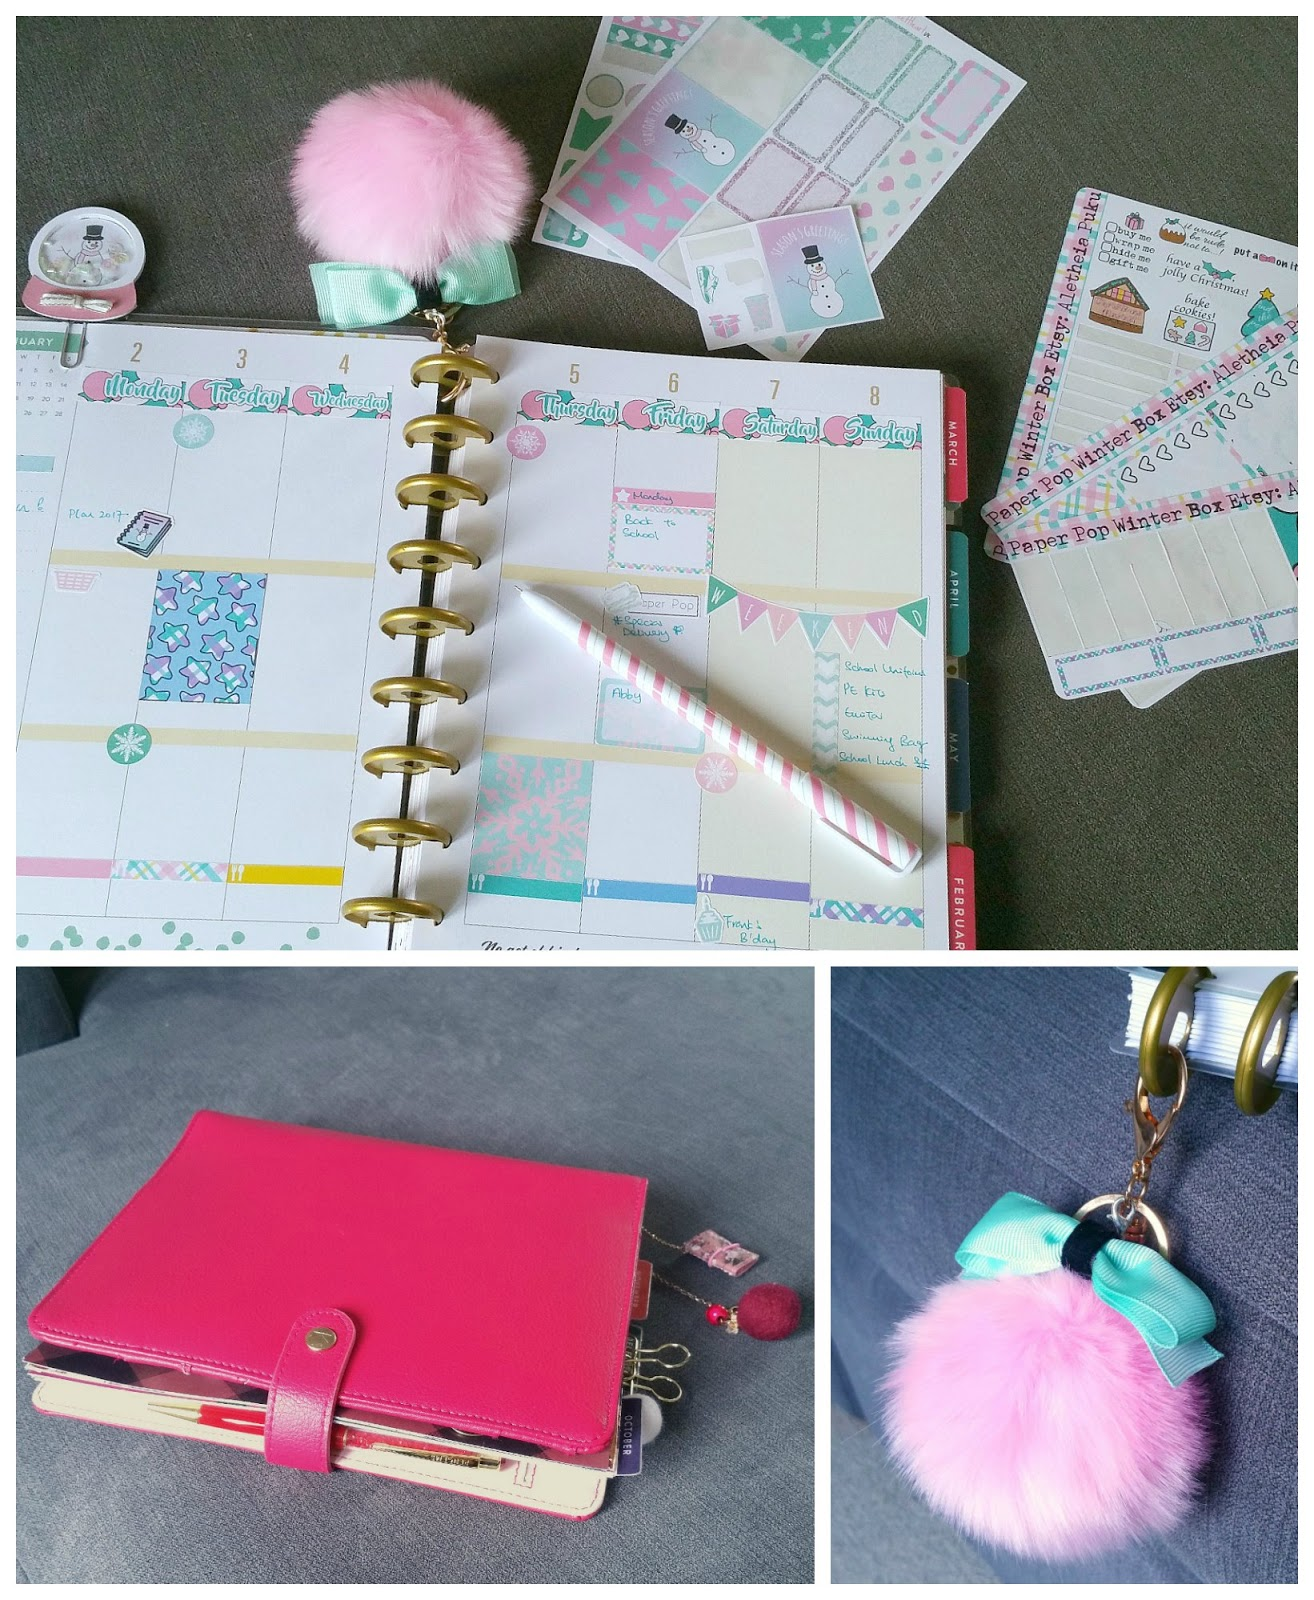 Paperpop.co.uk Winter box, Planner stationery, UK Planner Addicts